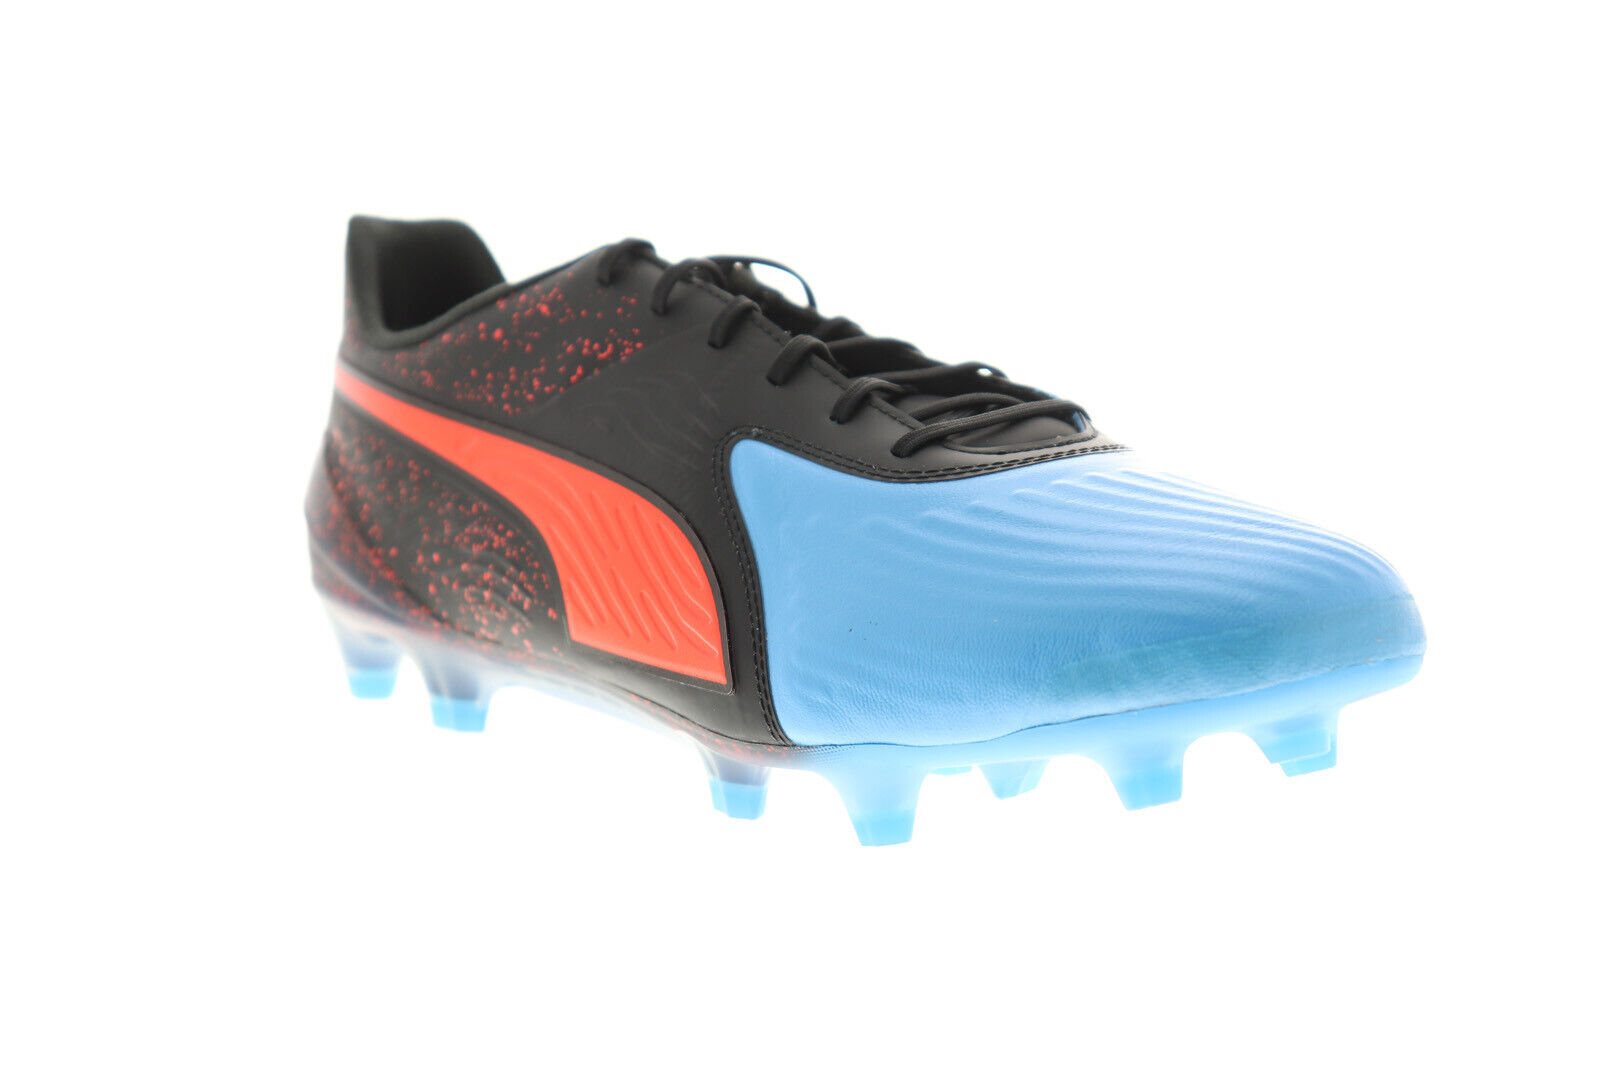 Puma One 19.1 Cc FG AG 10548201 Mens Black Low Top Athletic Soccer Cleats Shoes